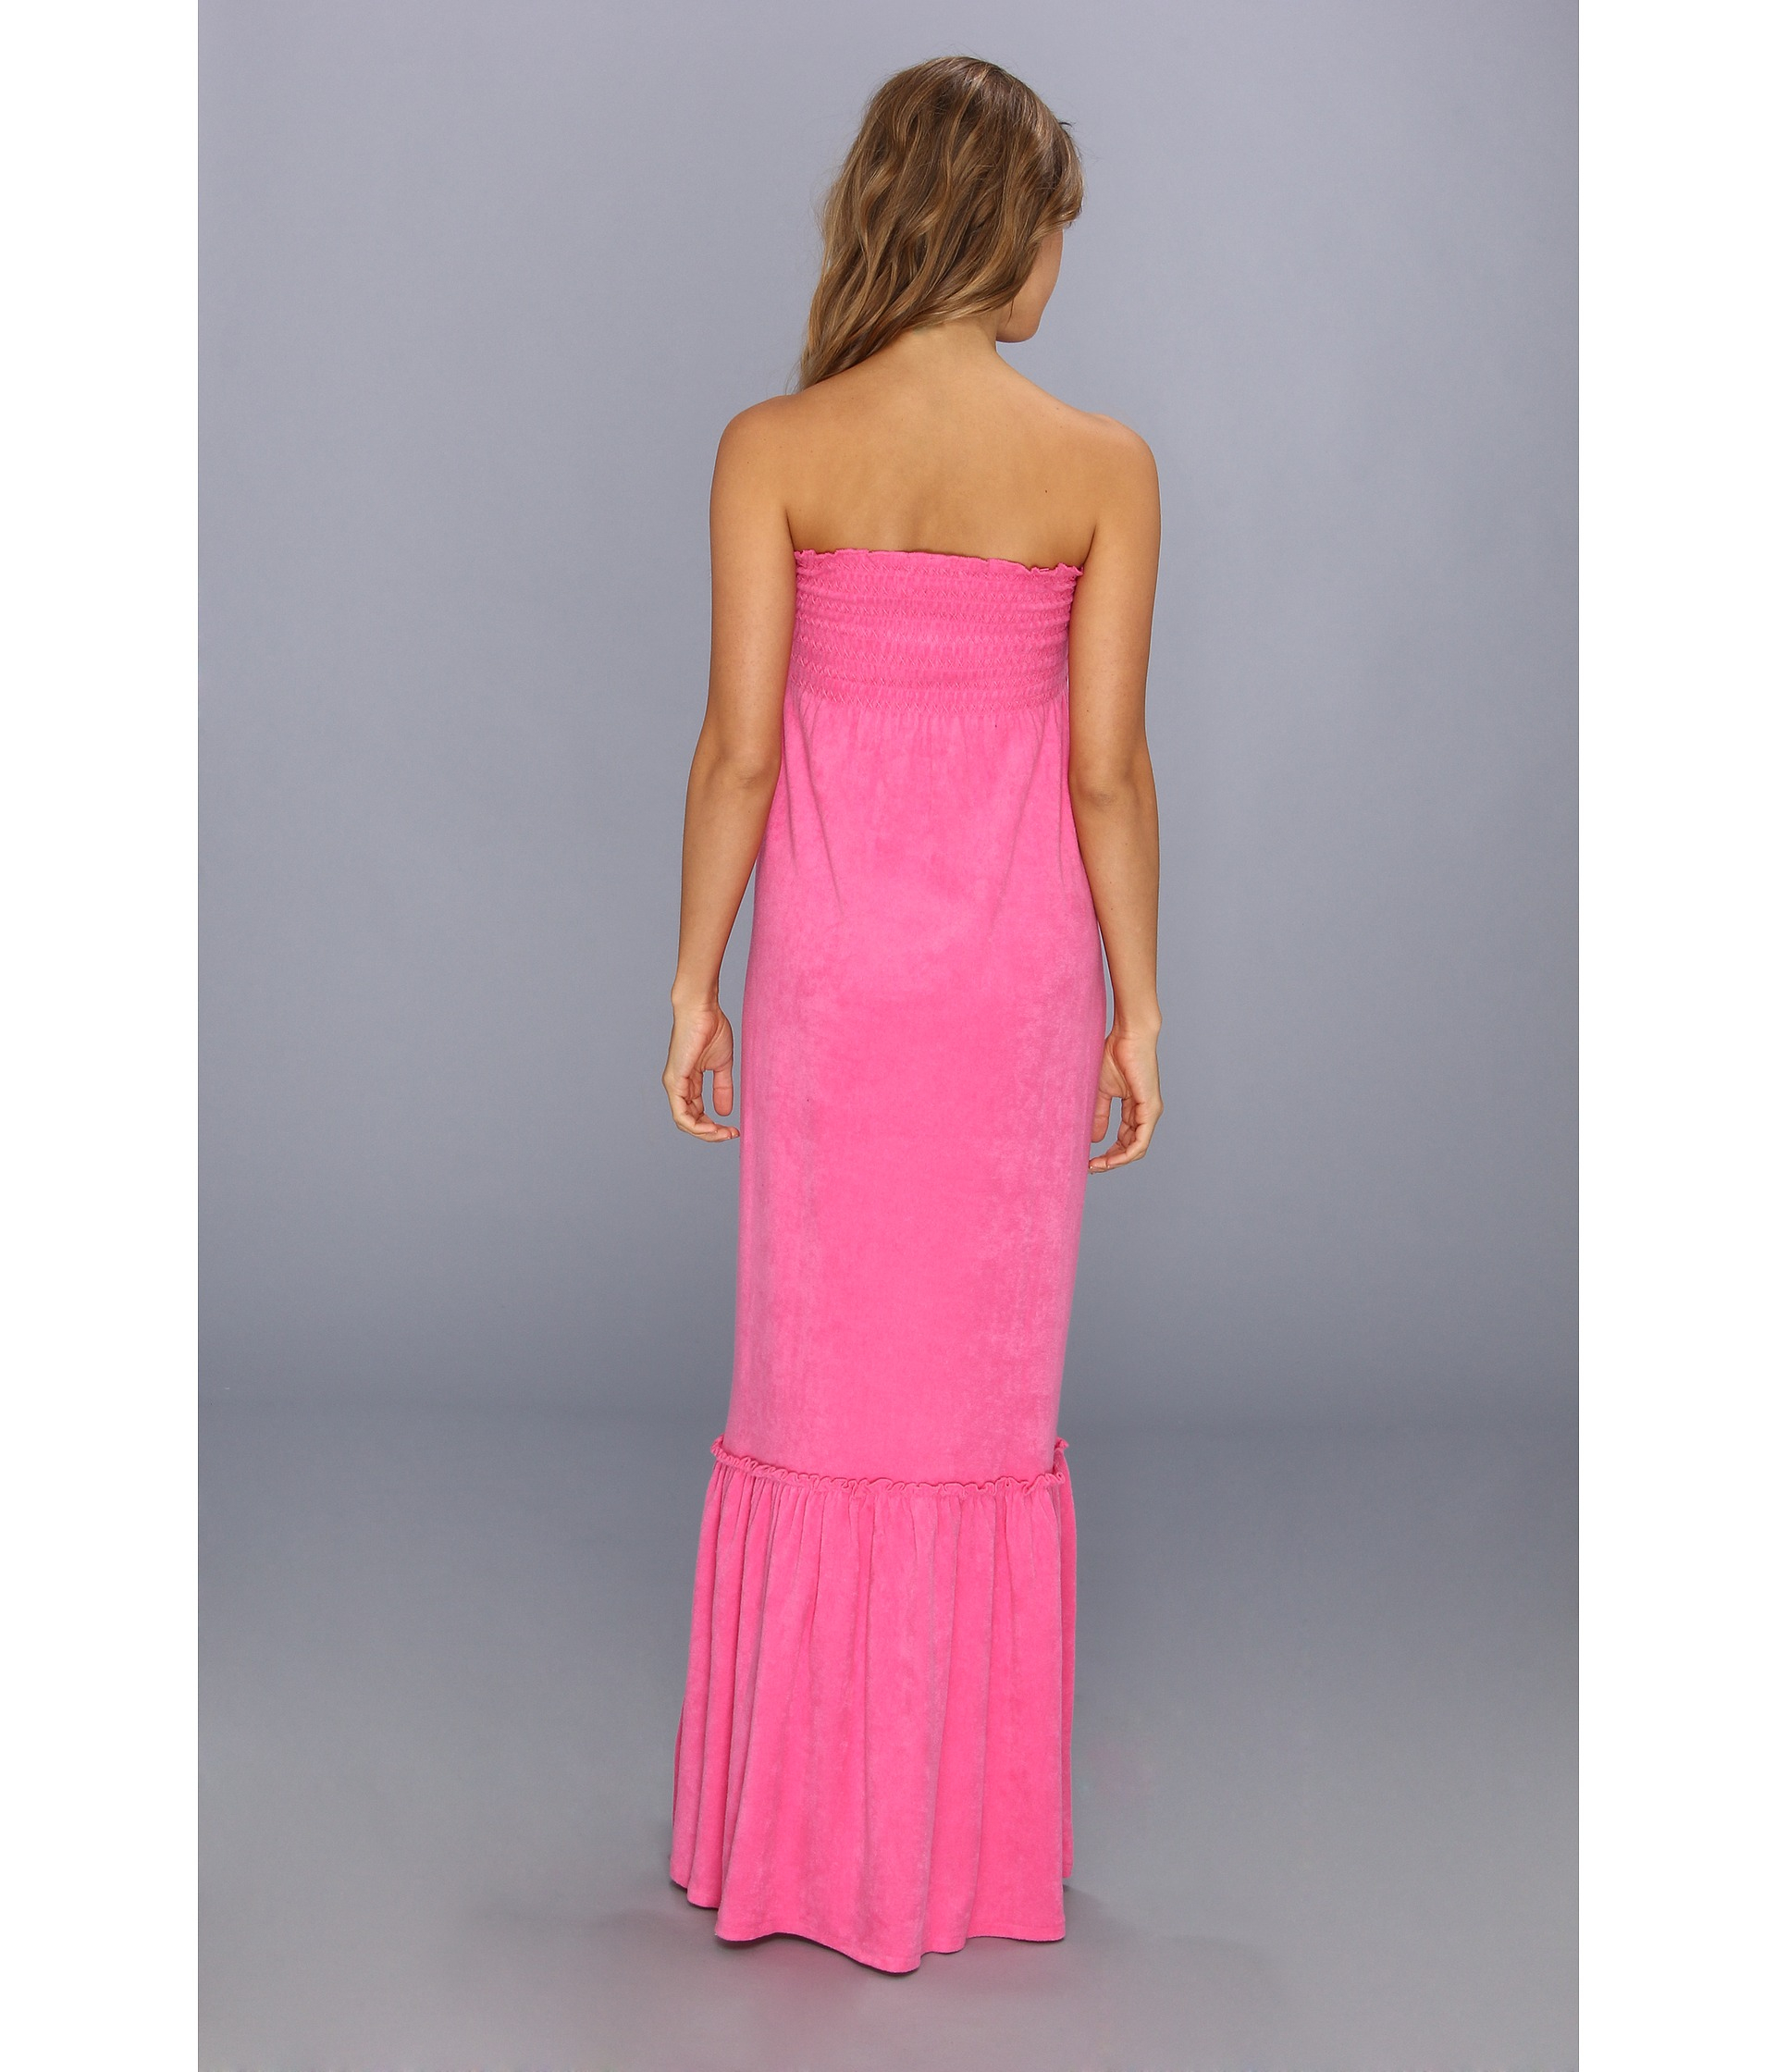 f1580c0e5e Lyst - Juicy Couture Micro Terry Smock Dress in Pink